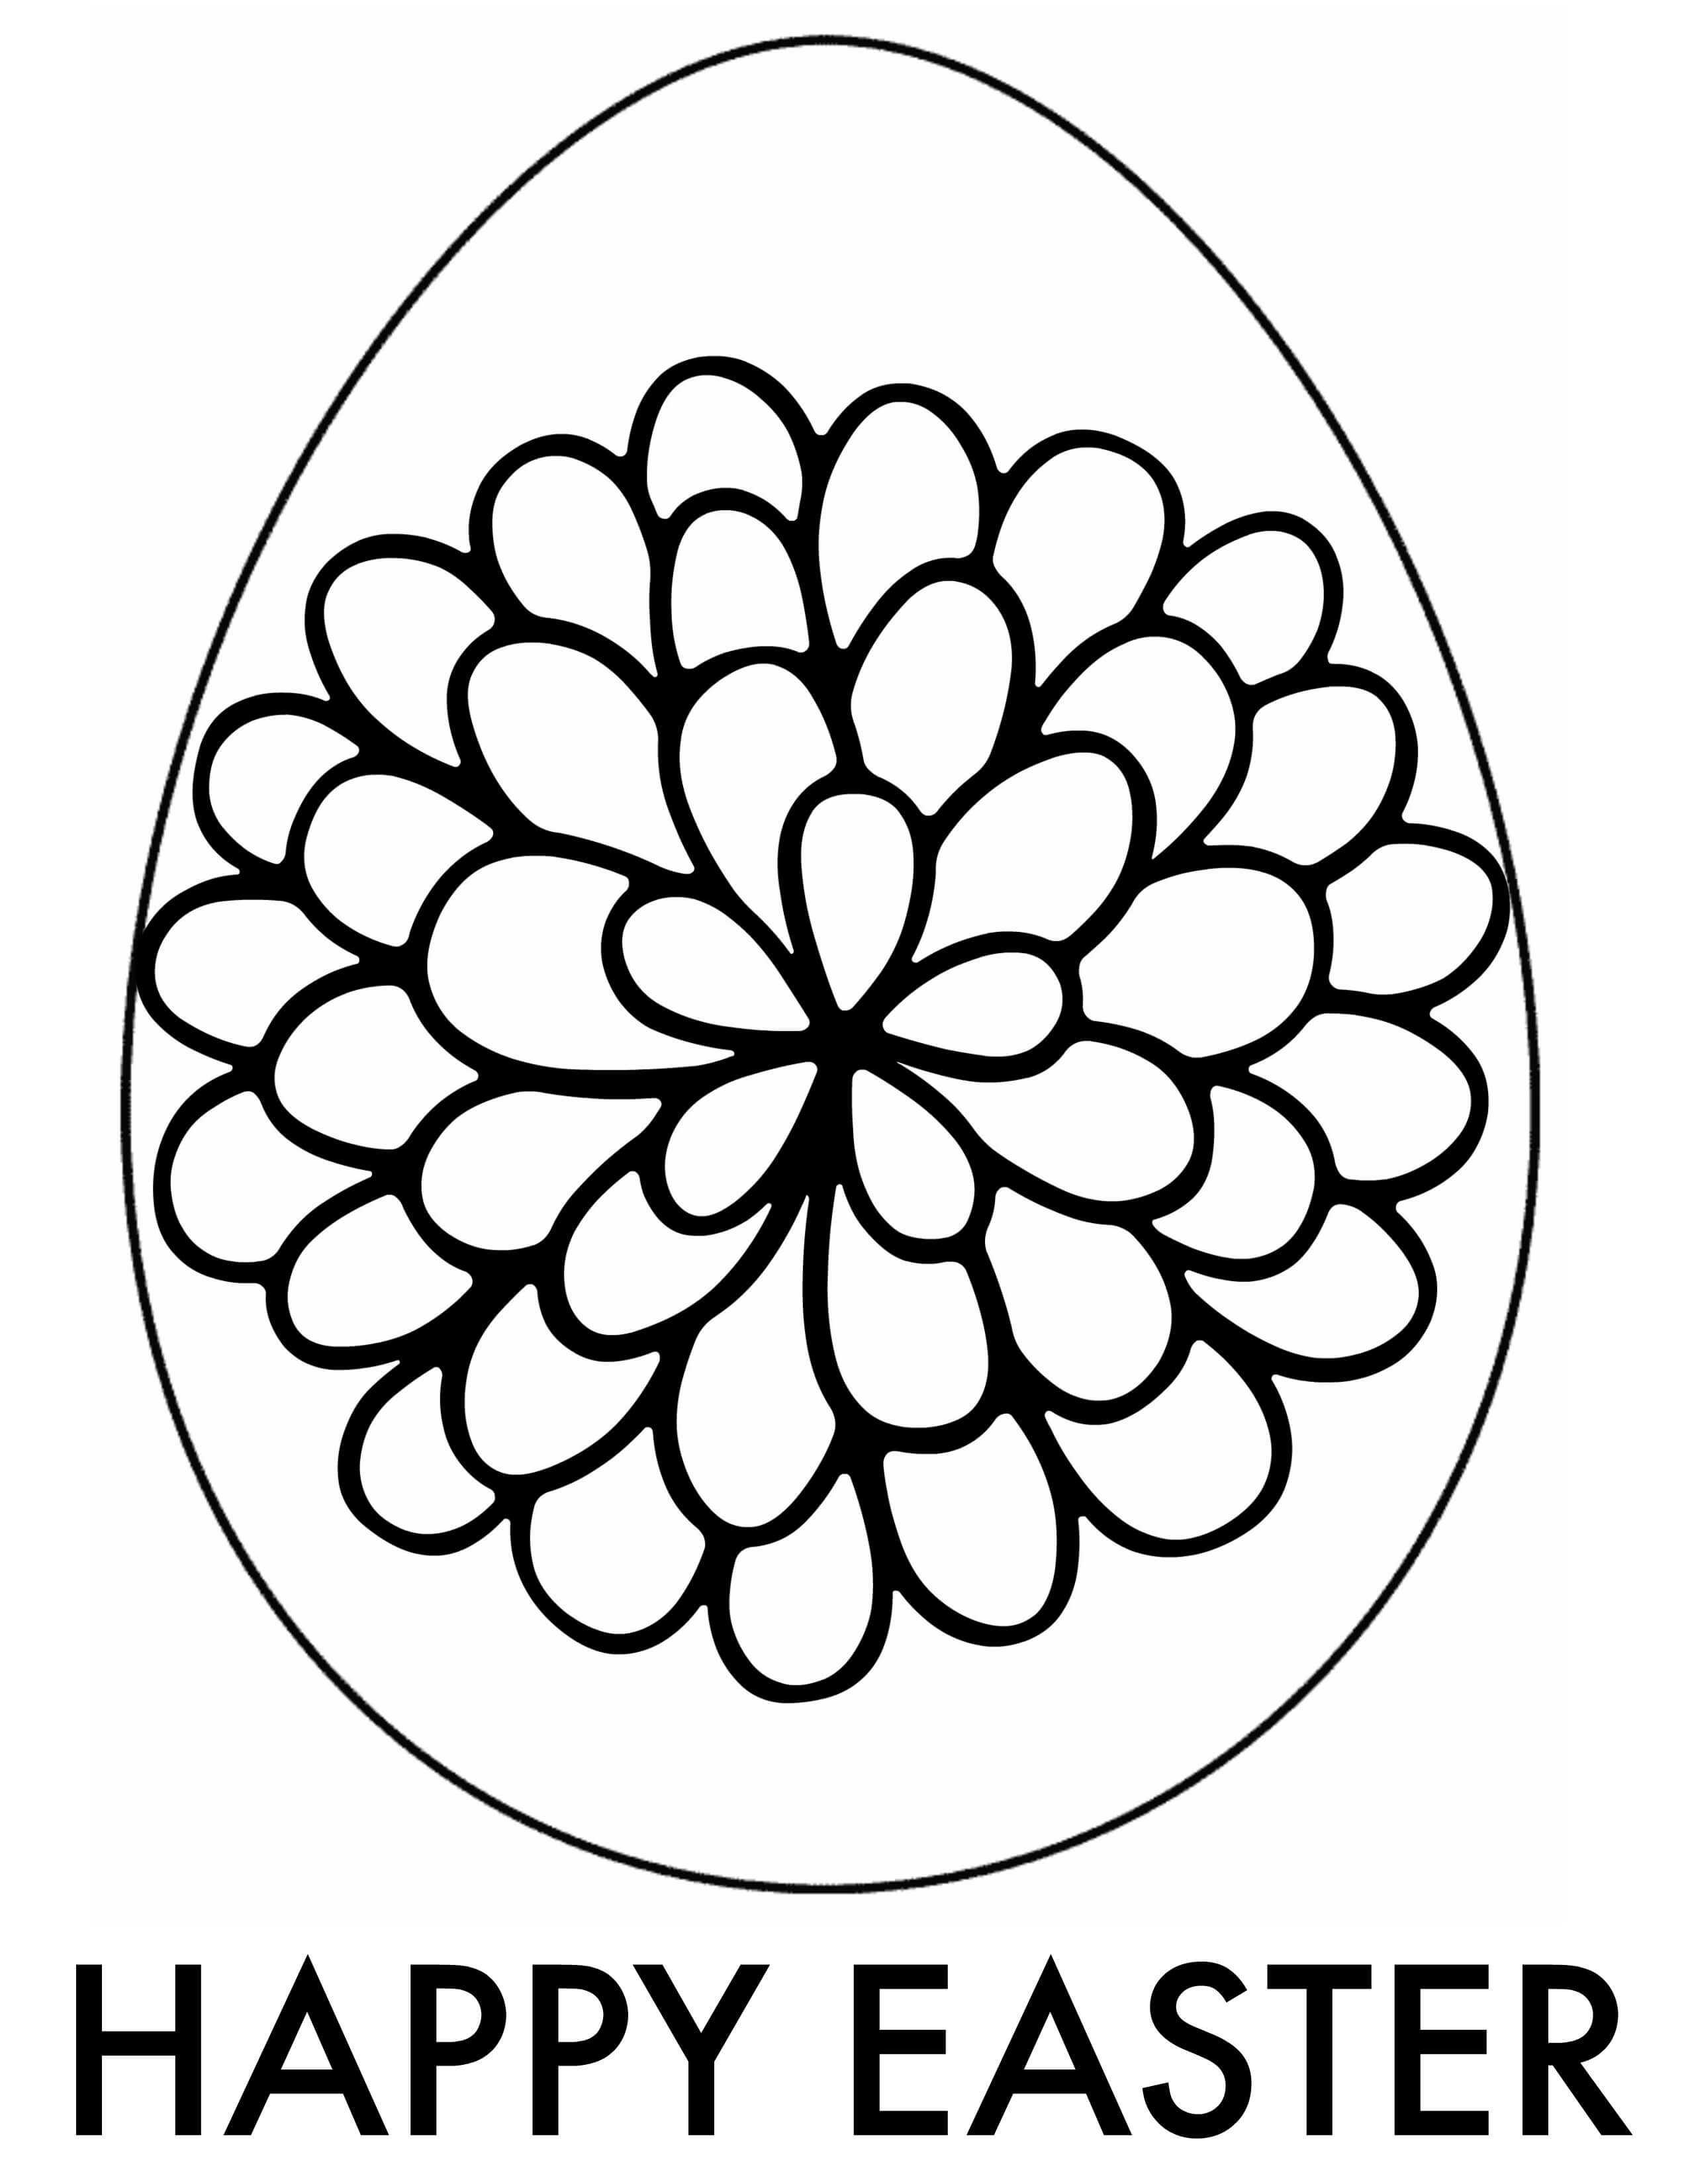 2550x3300 Easter Adult Coloring Pages Free Printable Downloads Inside Tixac